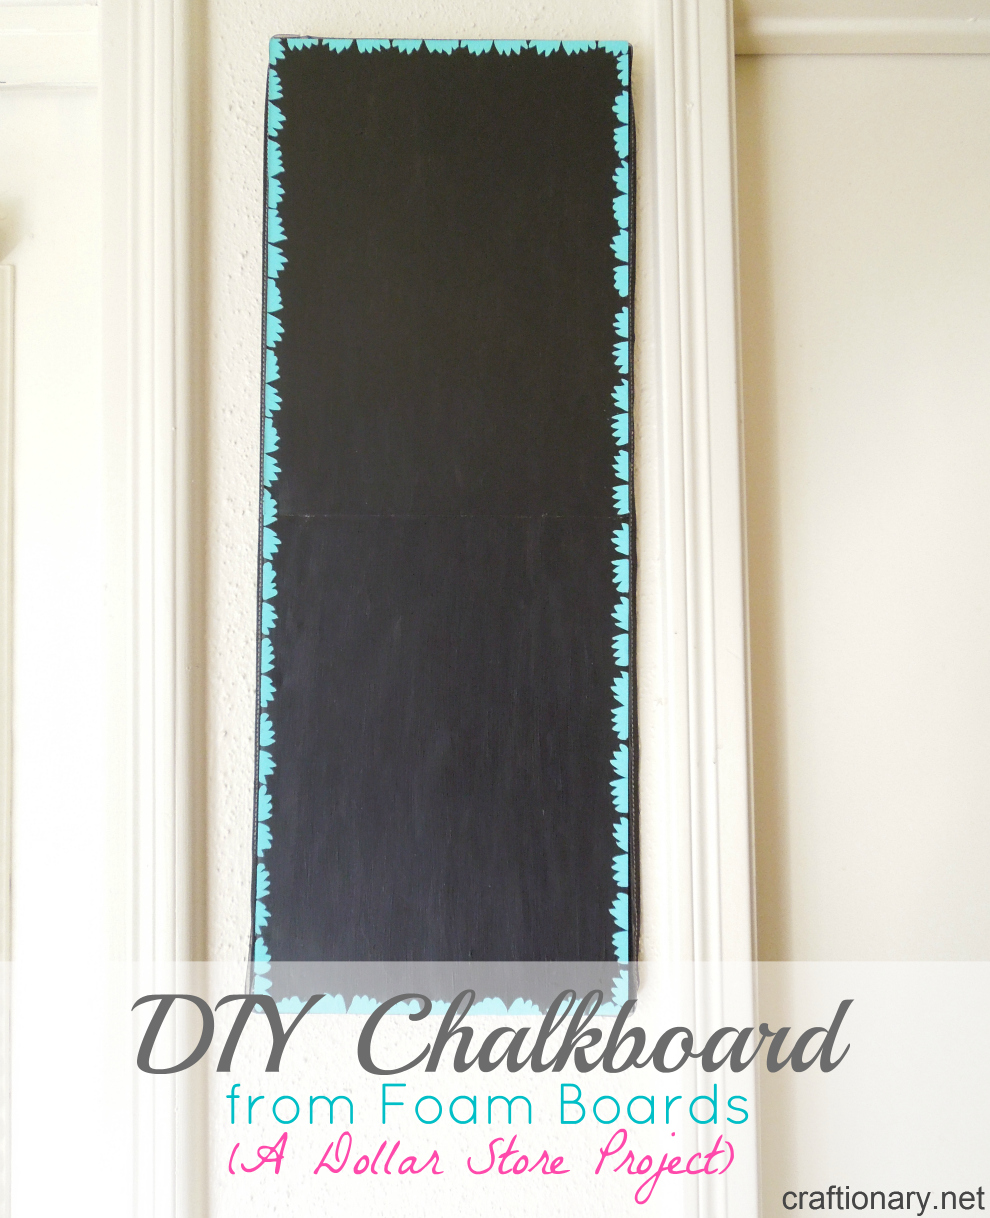 Craftionary for Chalkboard paint surface ideas